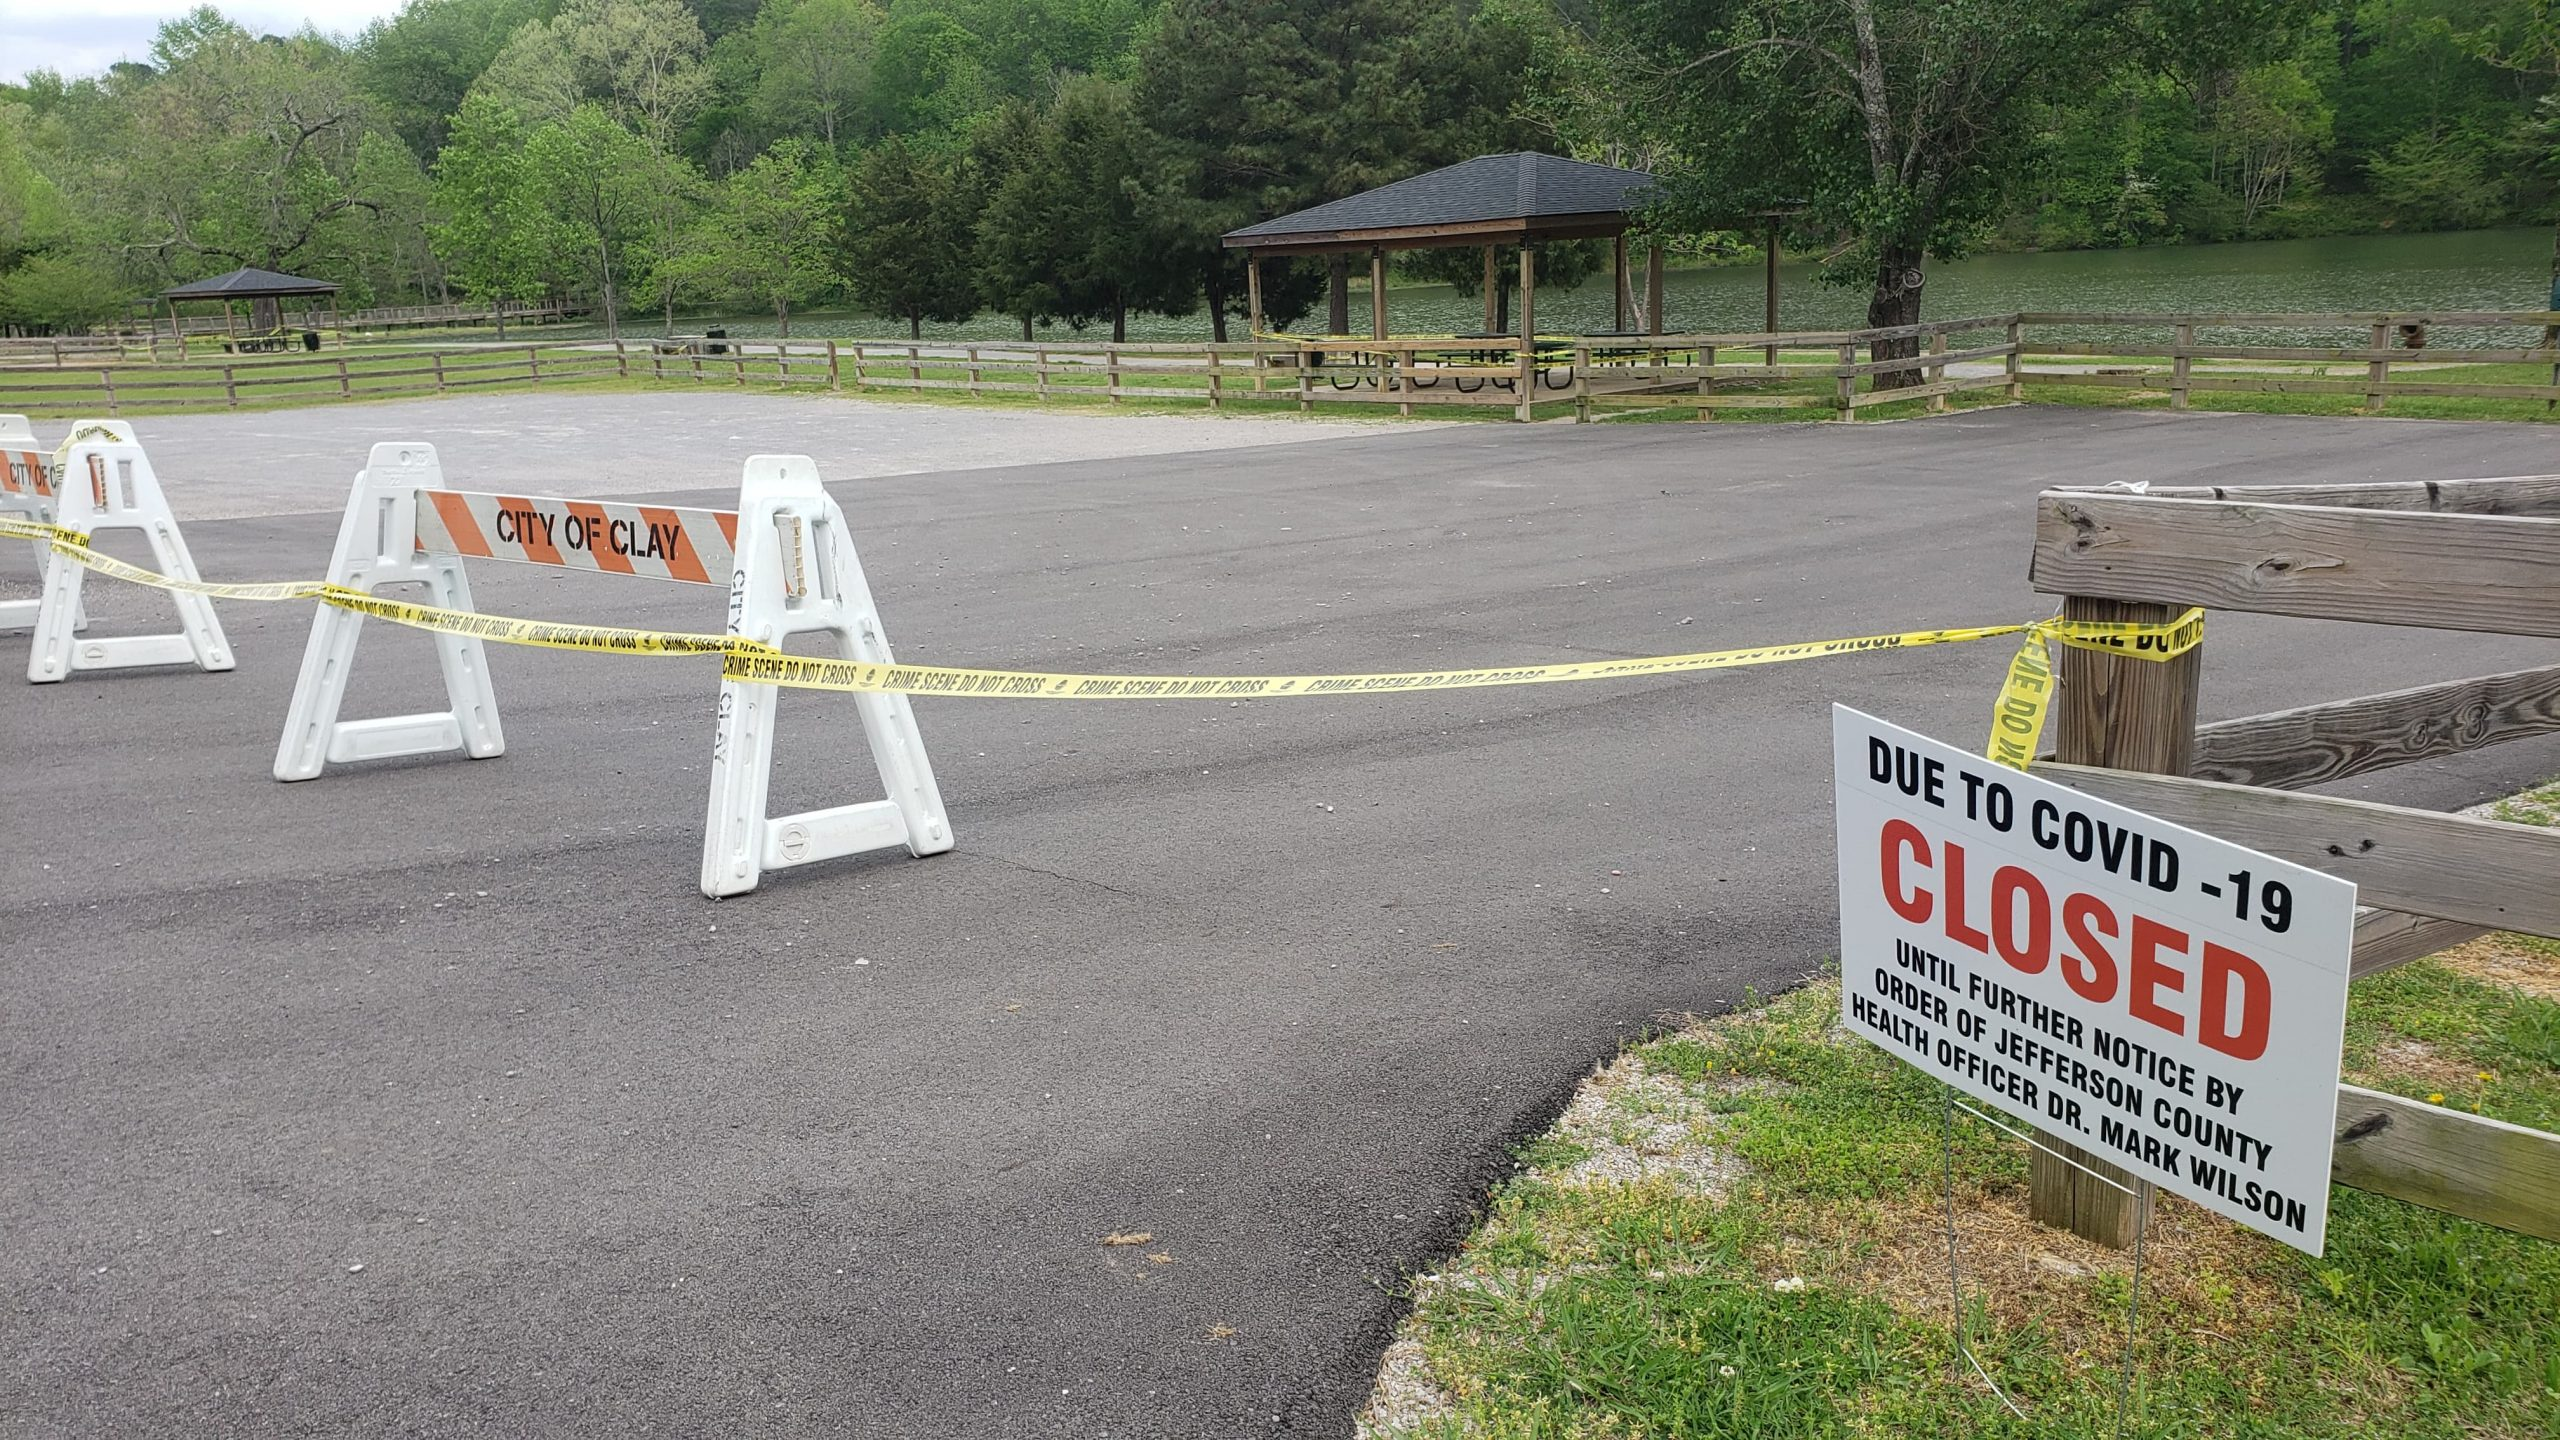 Entry to Cosby Lake in Clay blocked by barriers